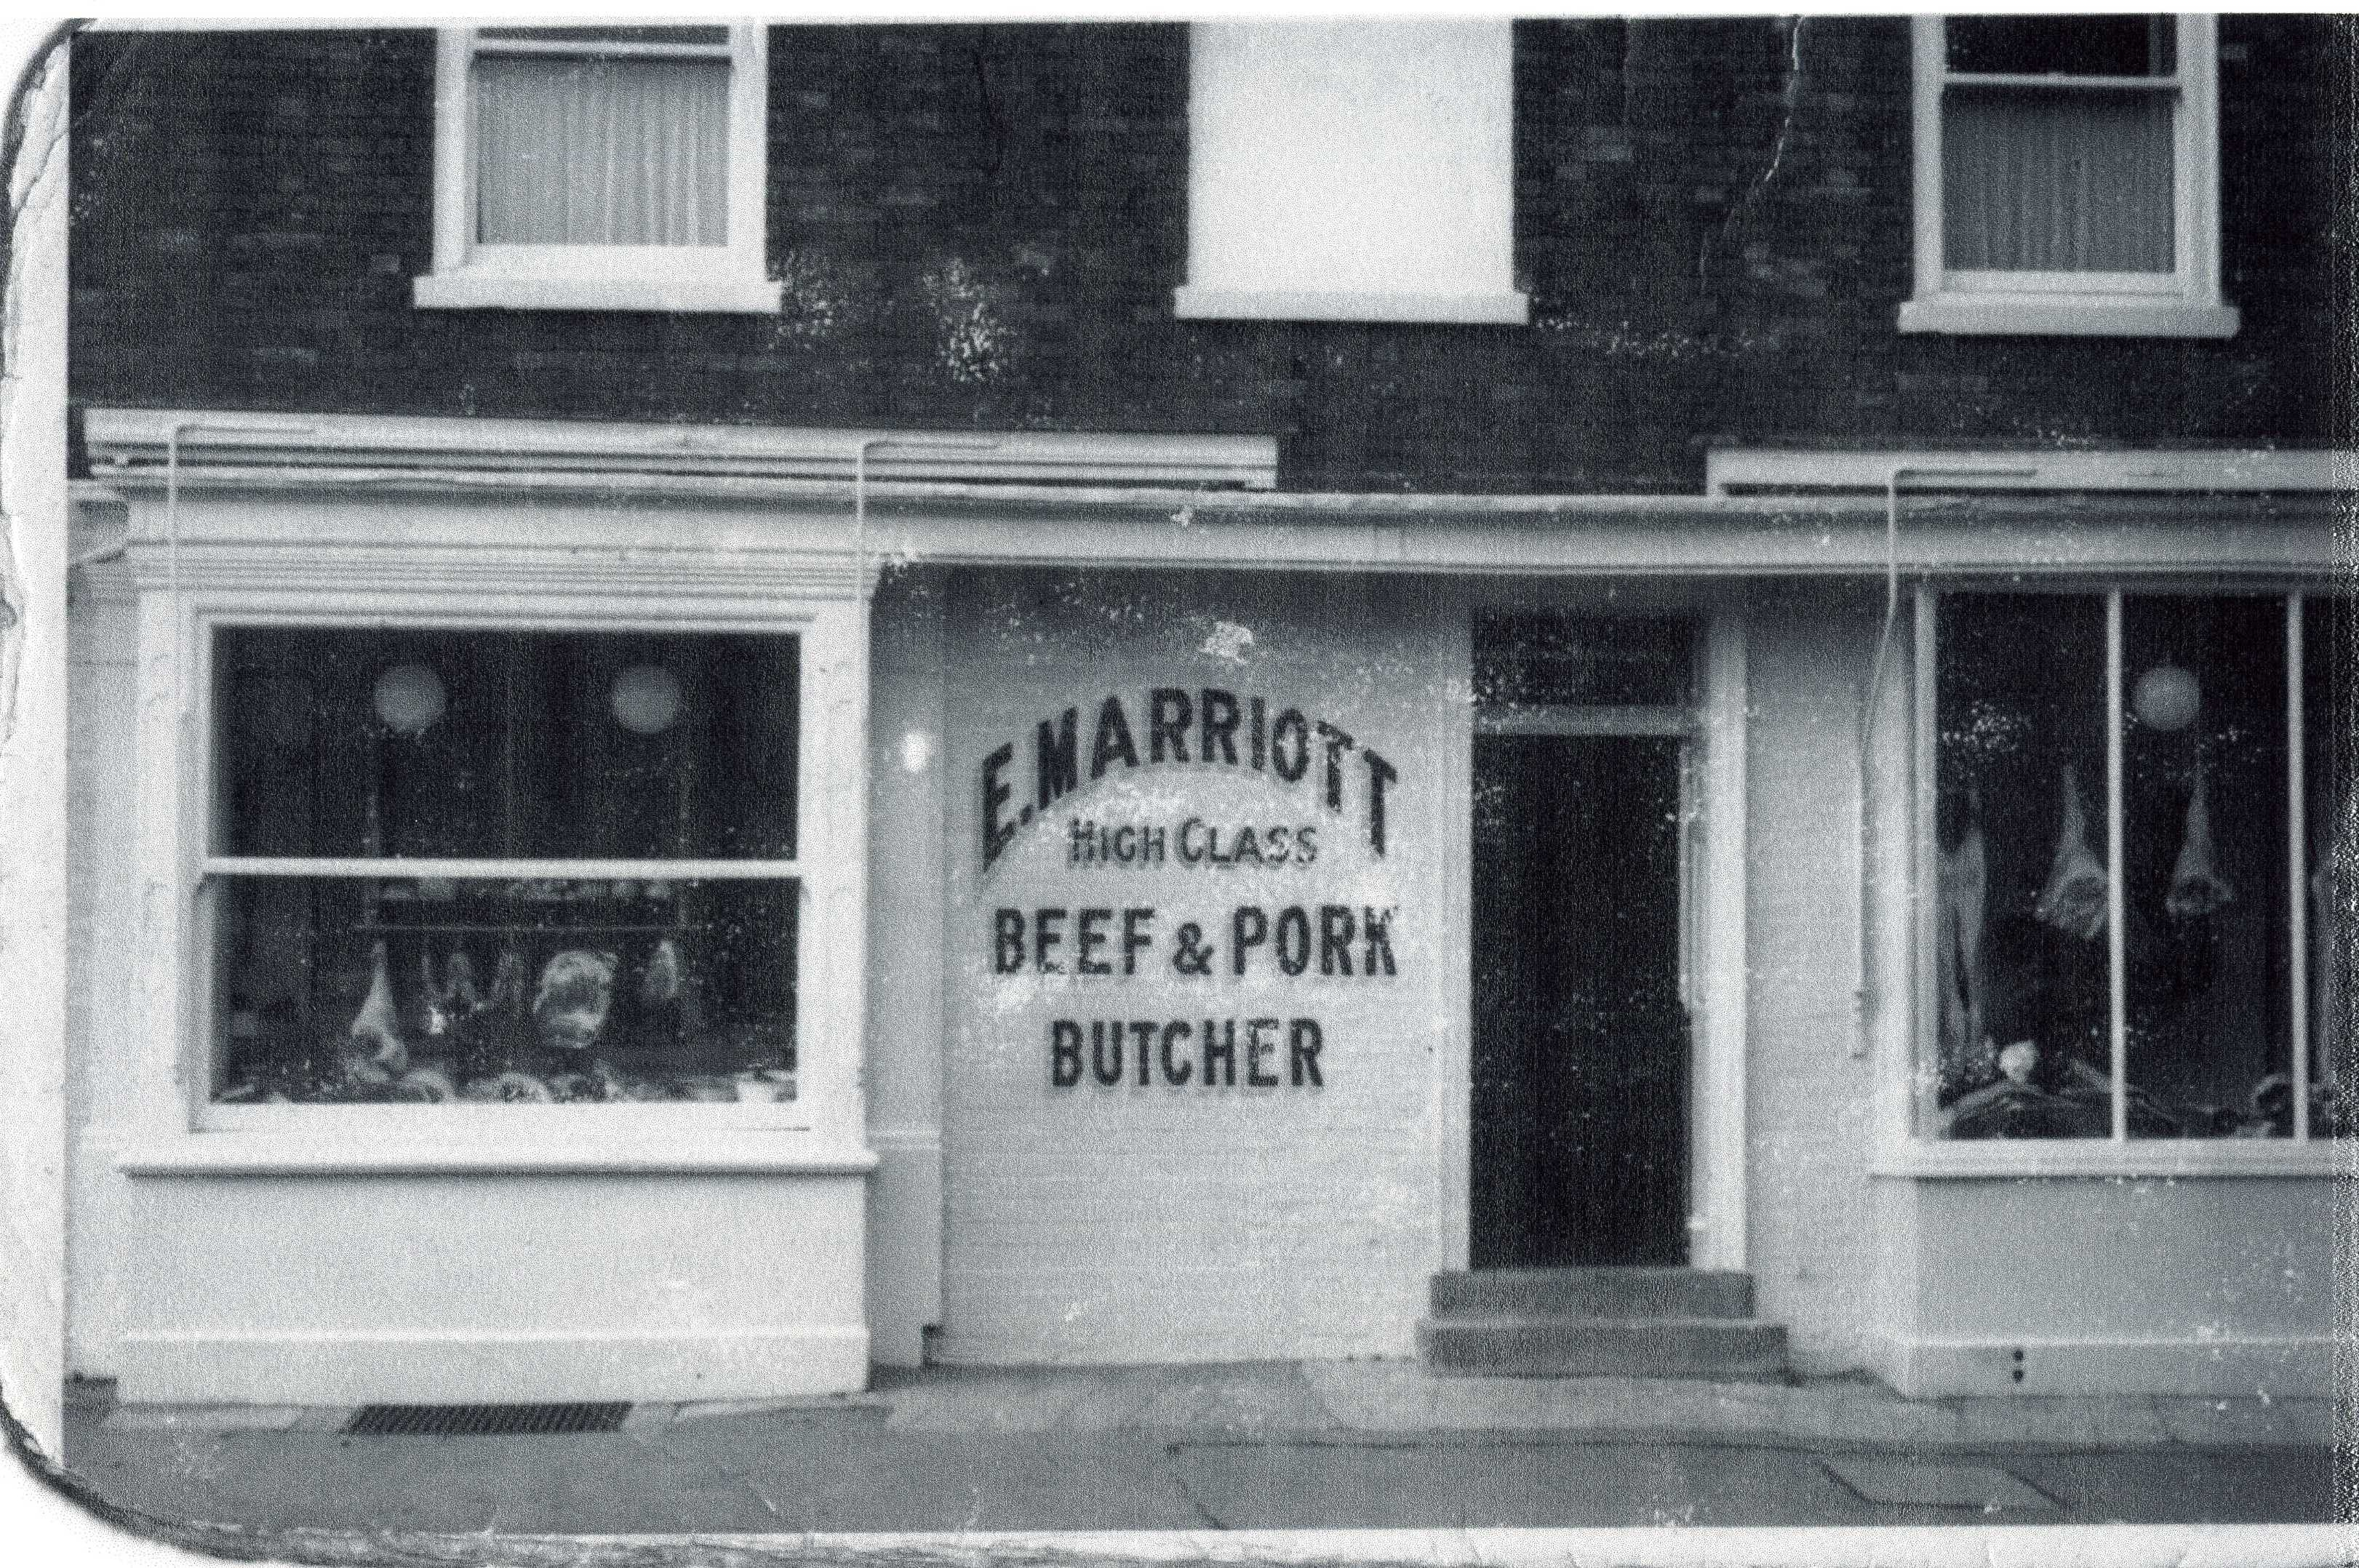 E. Marriott - Butchers